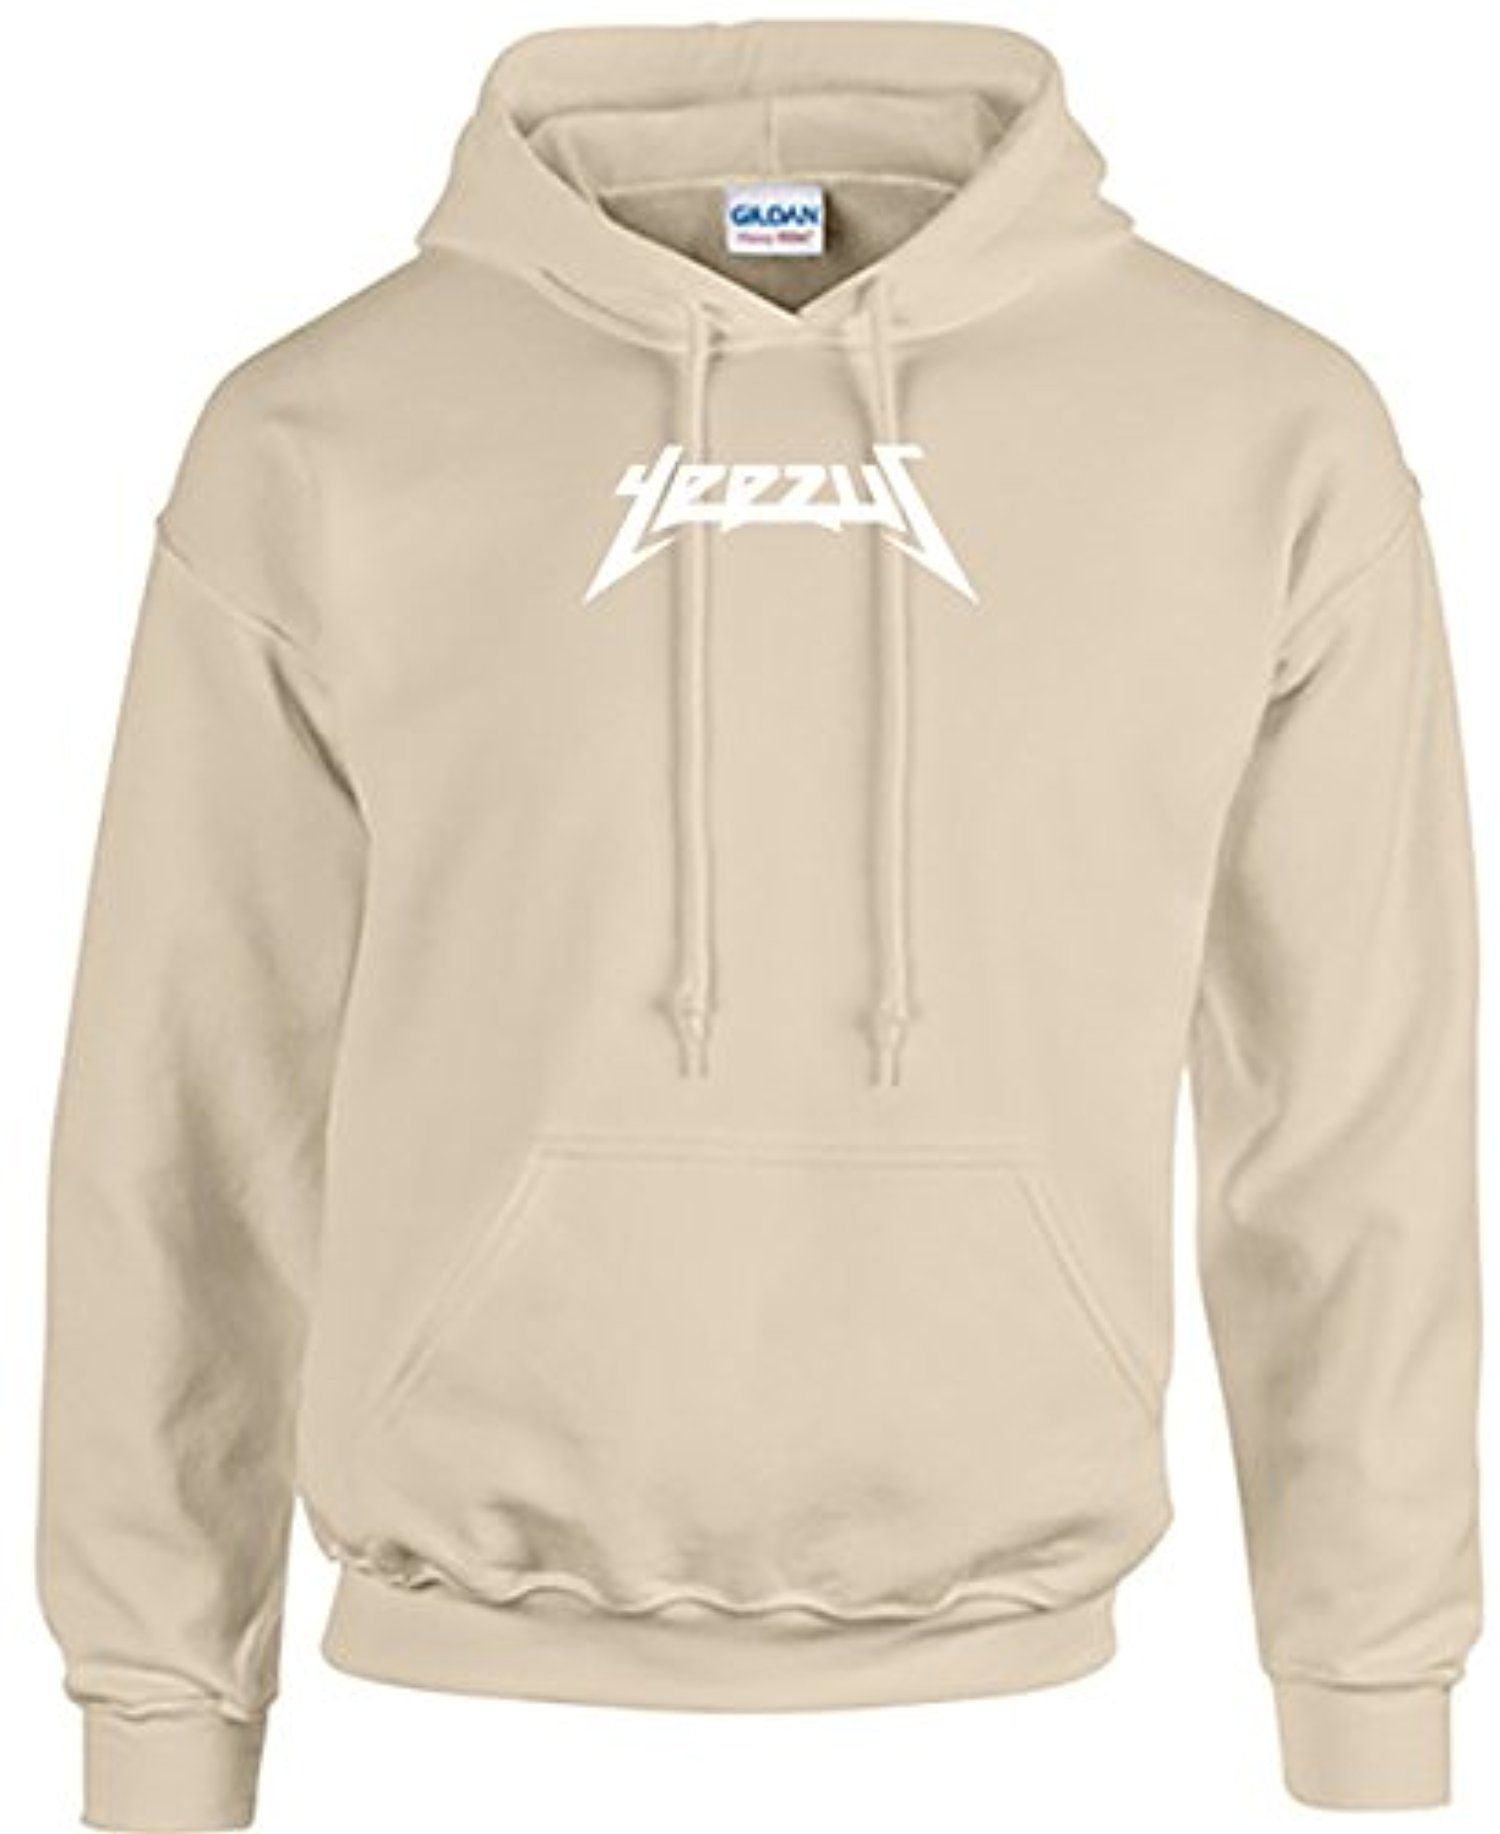 Yeezus Kanye West Hoodie - Unisex Sizing - Sand Color - Yeezy Tour at  Amazon Men's Clothing store: